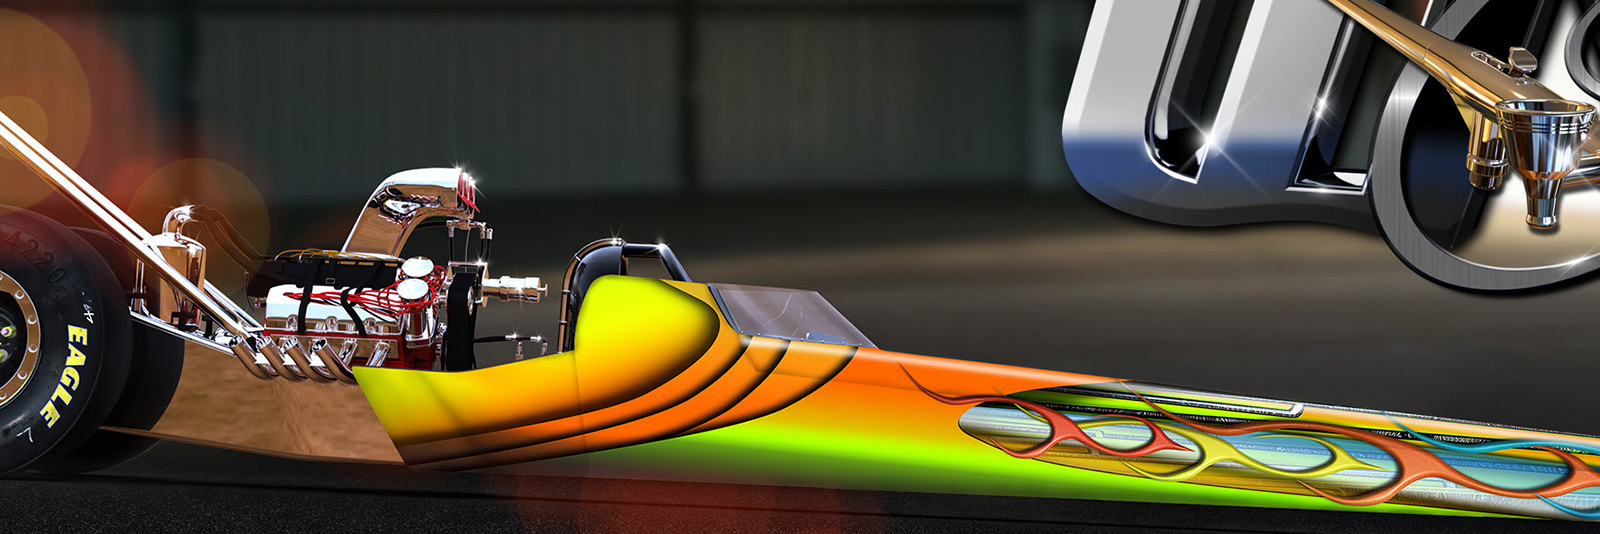 CIRCUIT CIRCUS dragster graphics wrap design 2